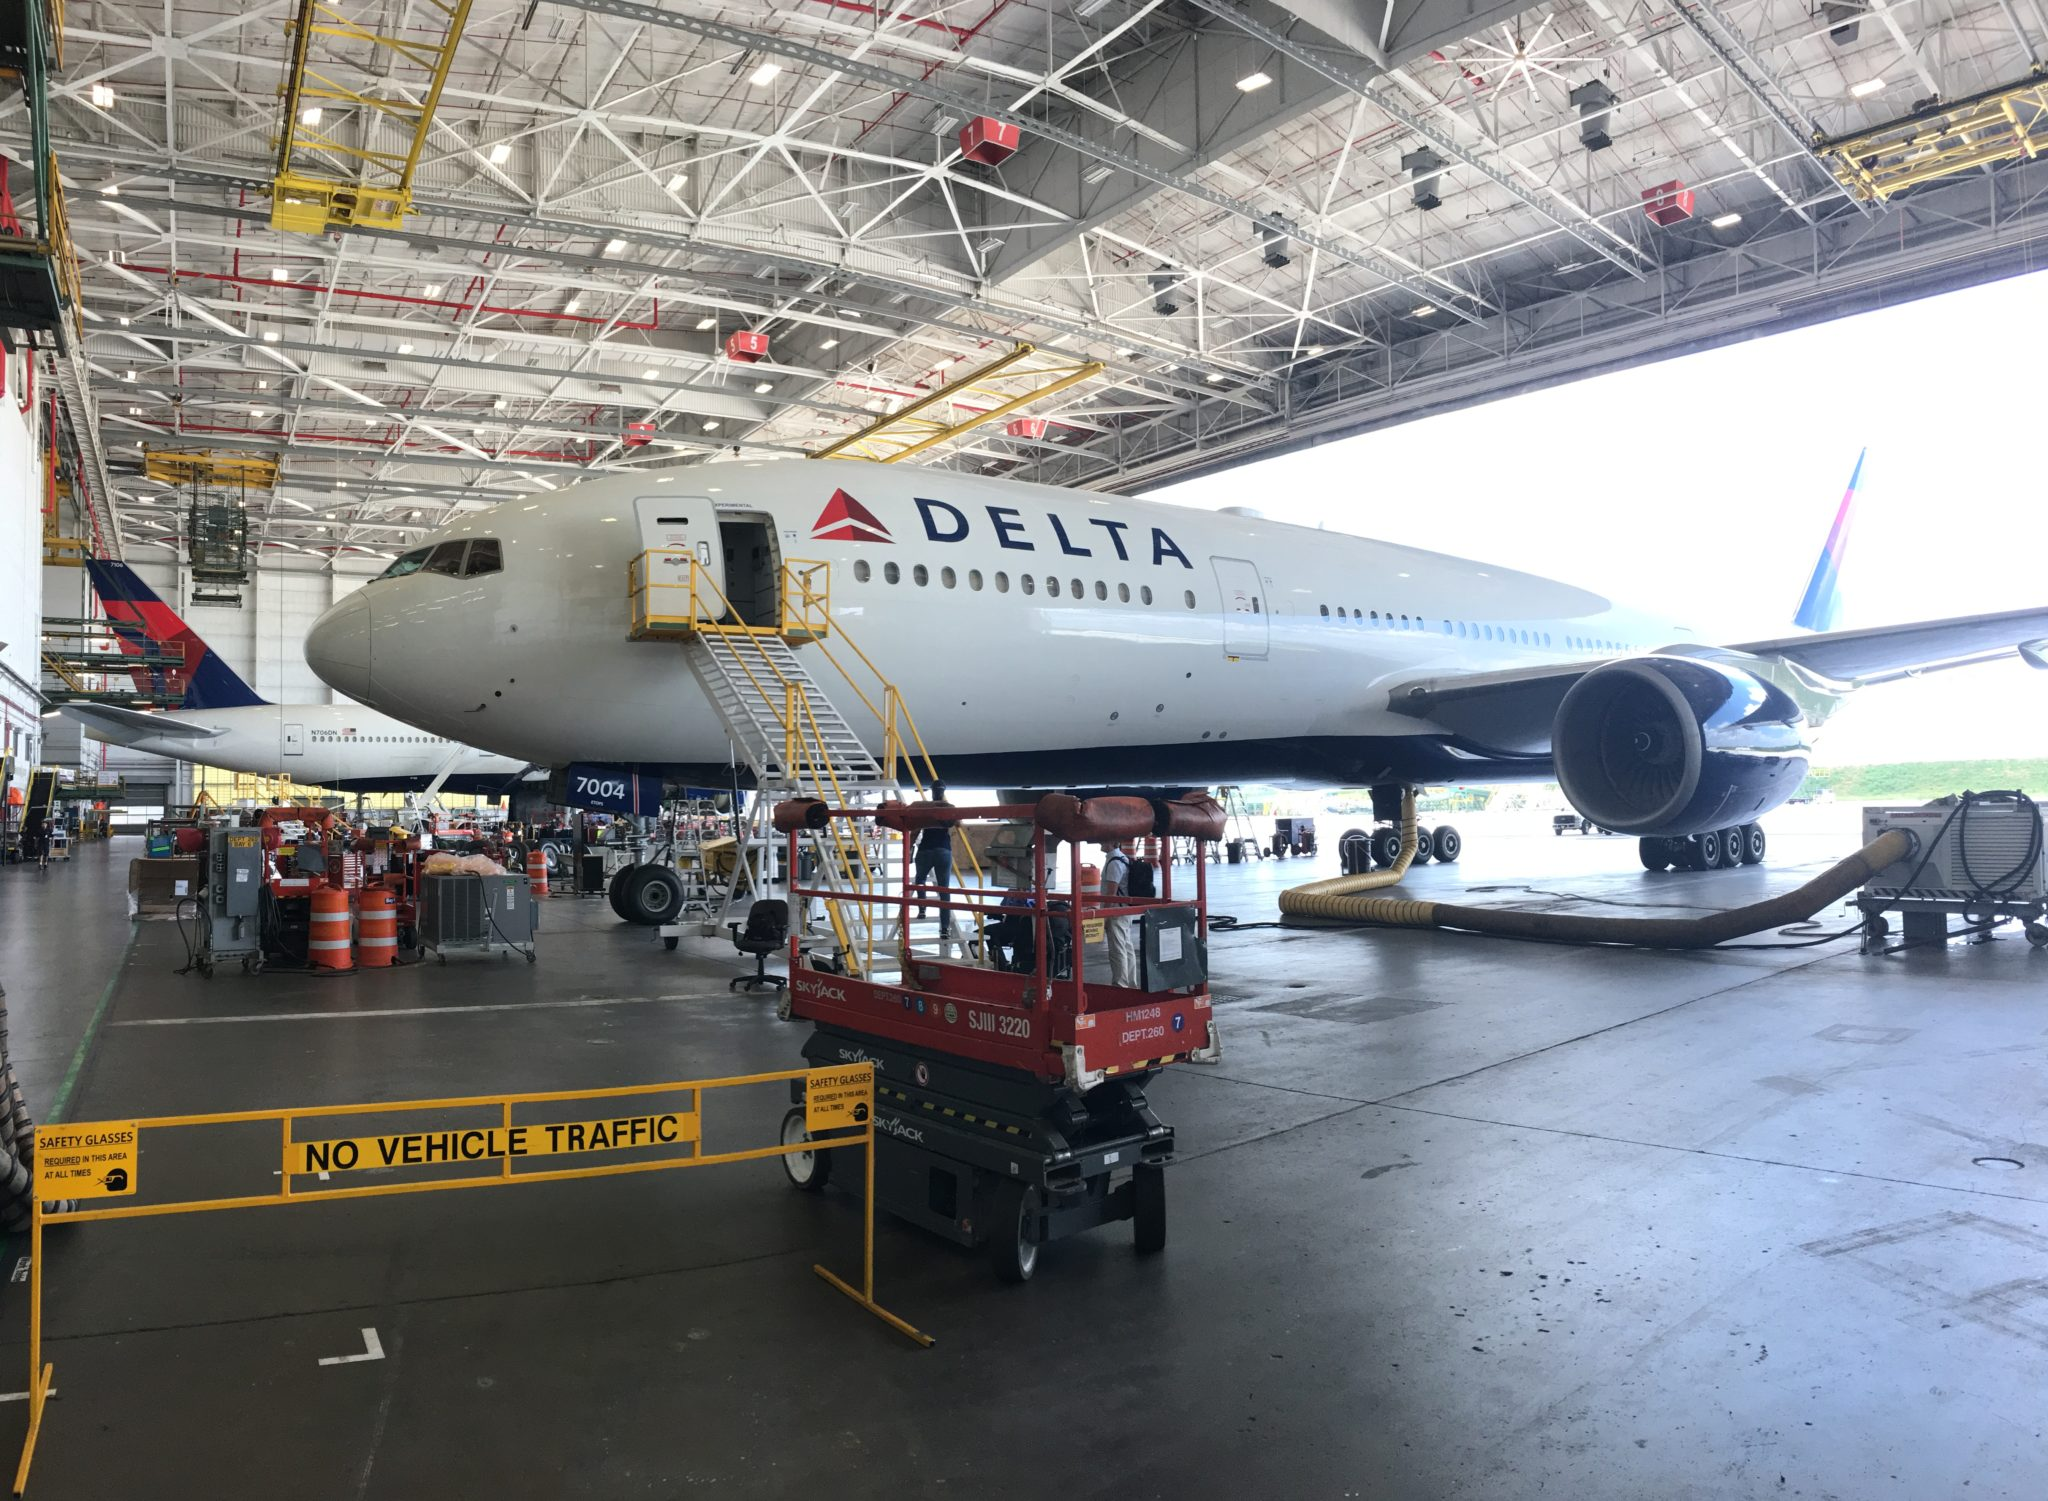 Delta bucks industry trend by ensuring comfort for 777 economy class